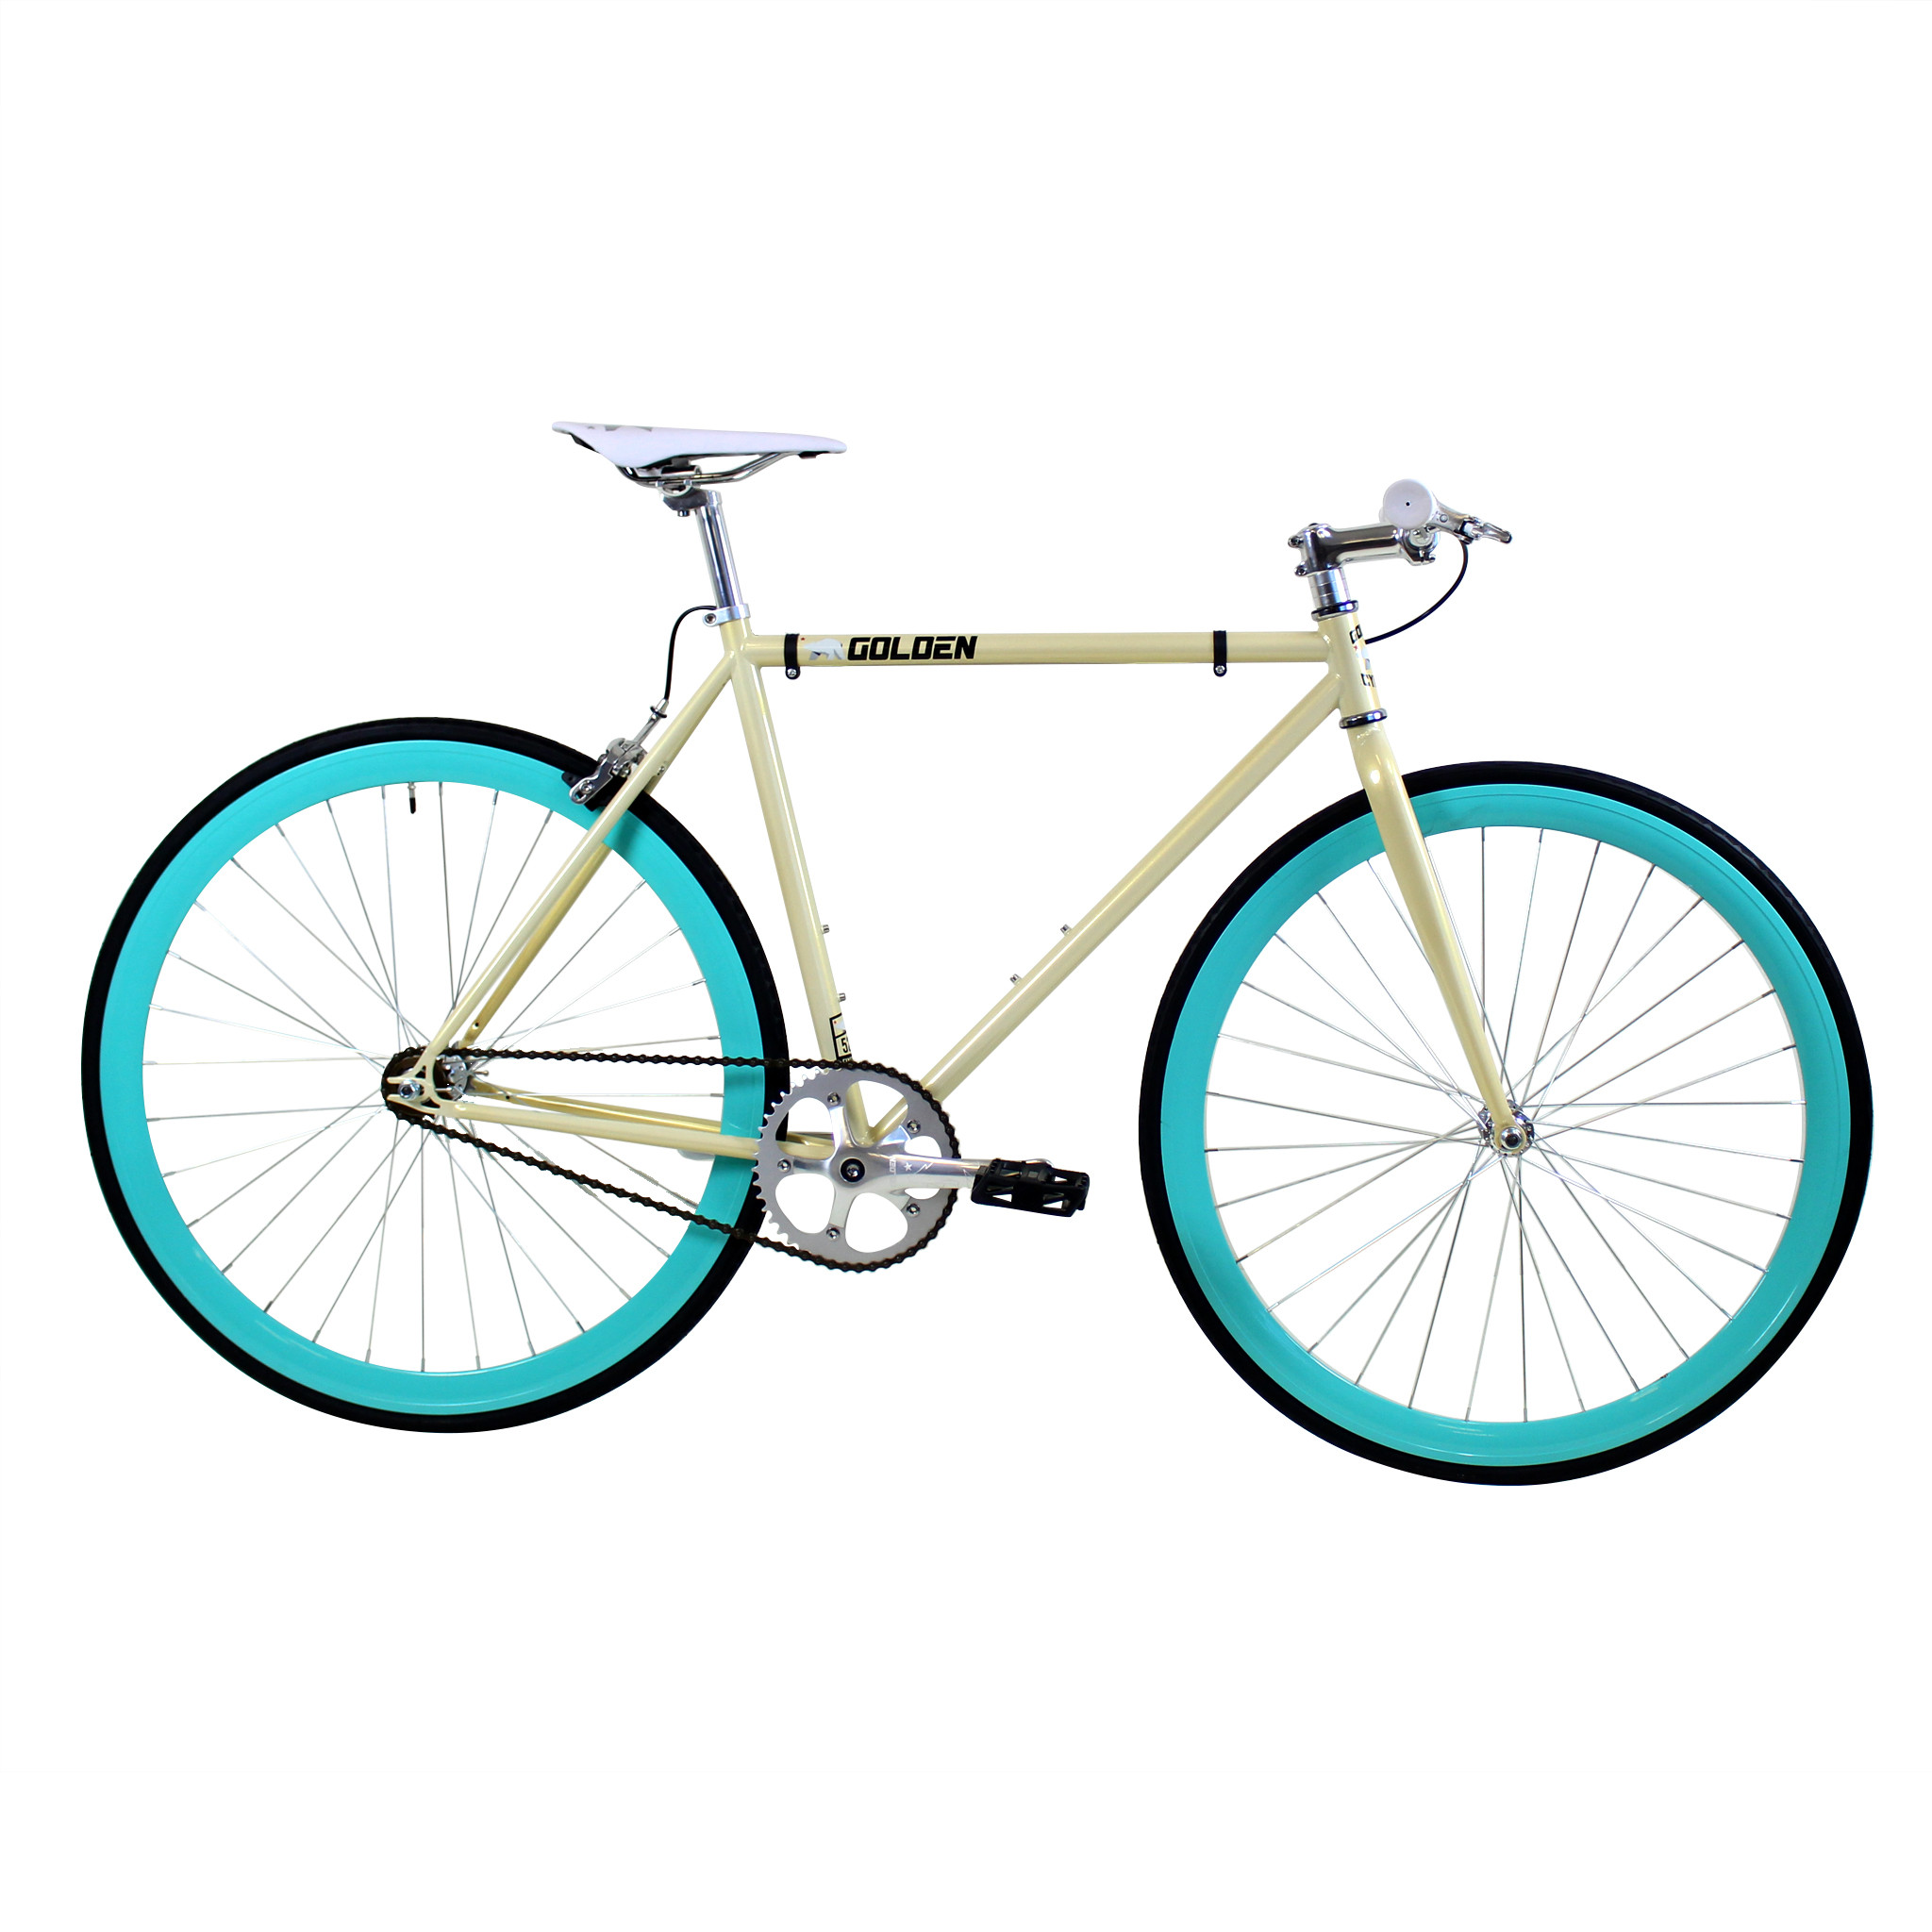 Golden Cycles Abigail Beige Teal Fixed Gear 41 cm